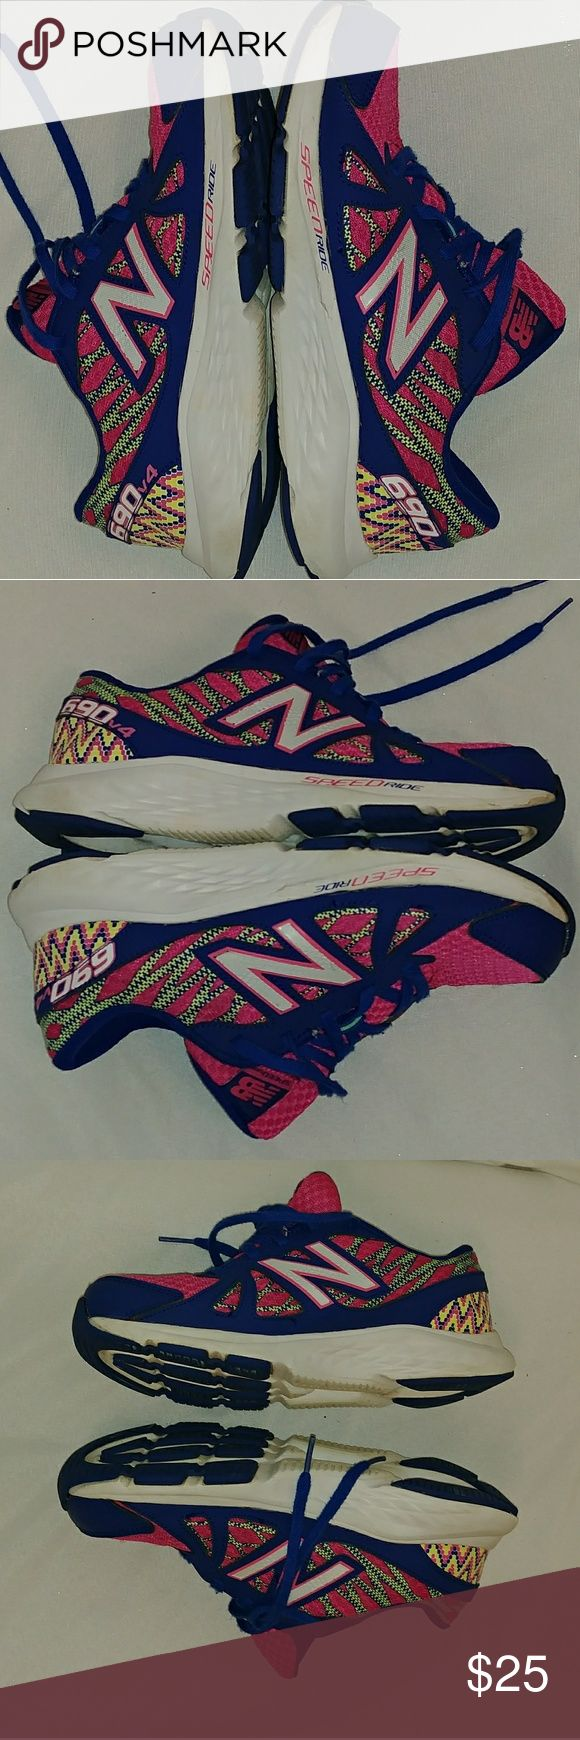 New balance sneakers New balance sneakers size 5 New Balance Shoes Sneakers